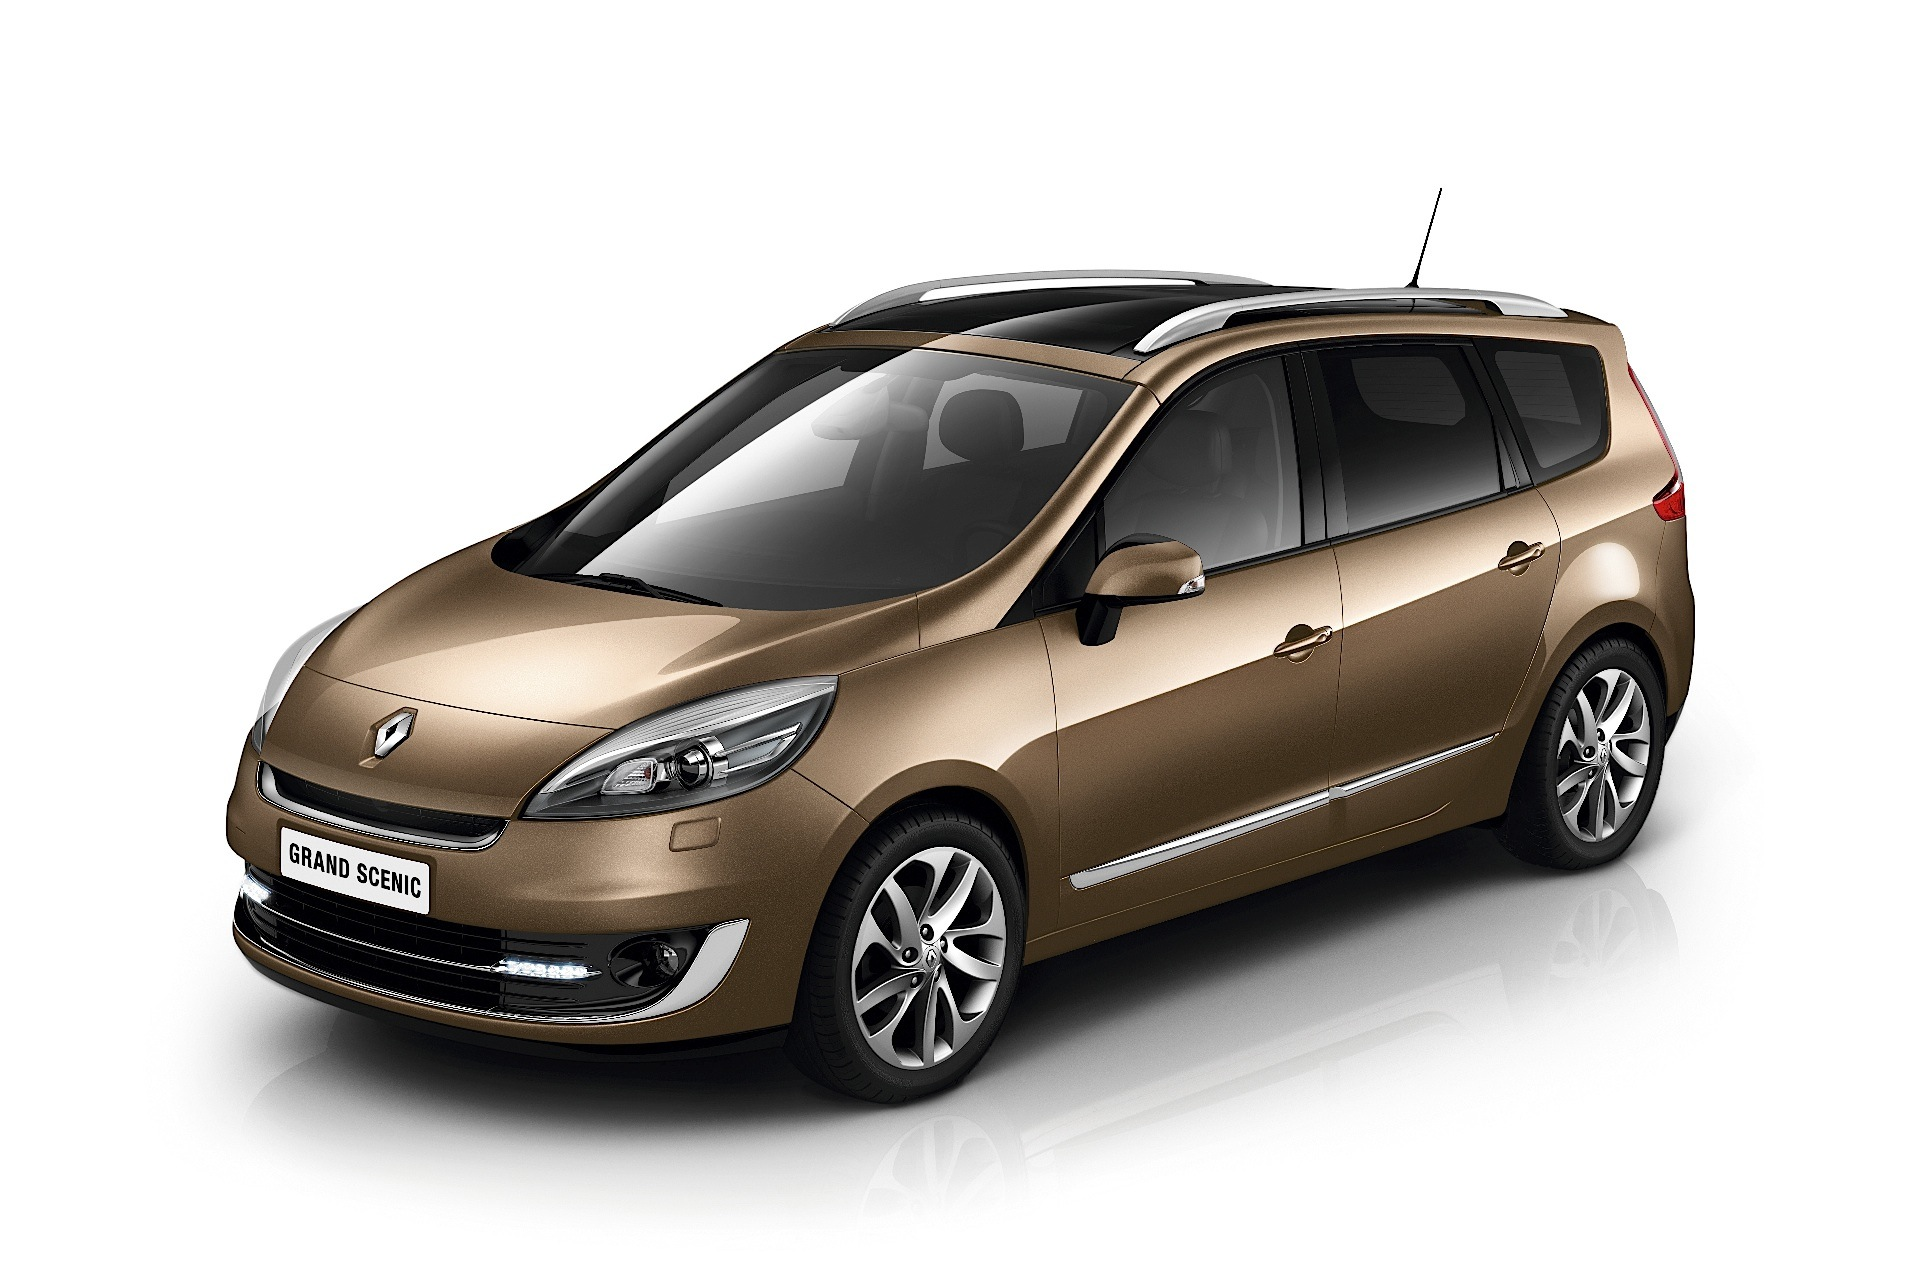 2014 renault scenic iii pictures information and specs. Black Bedroom Furniture Sets. Home Design Ideas